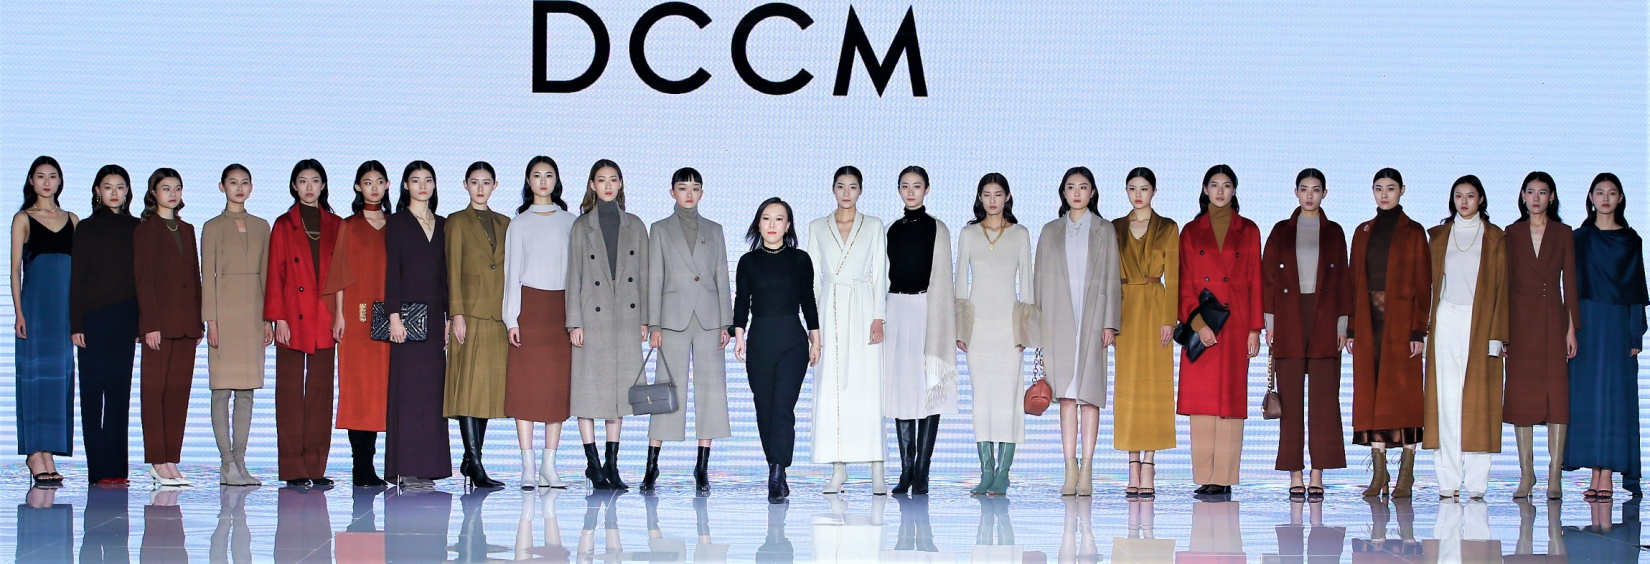 Silk road DCCM full collection business attire 1-21.jpg